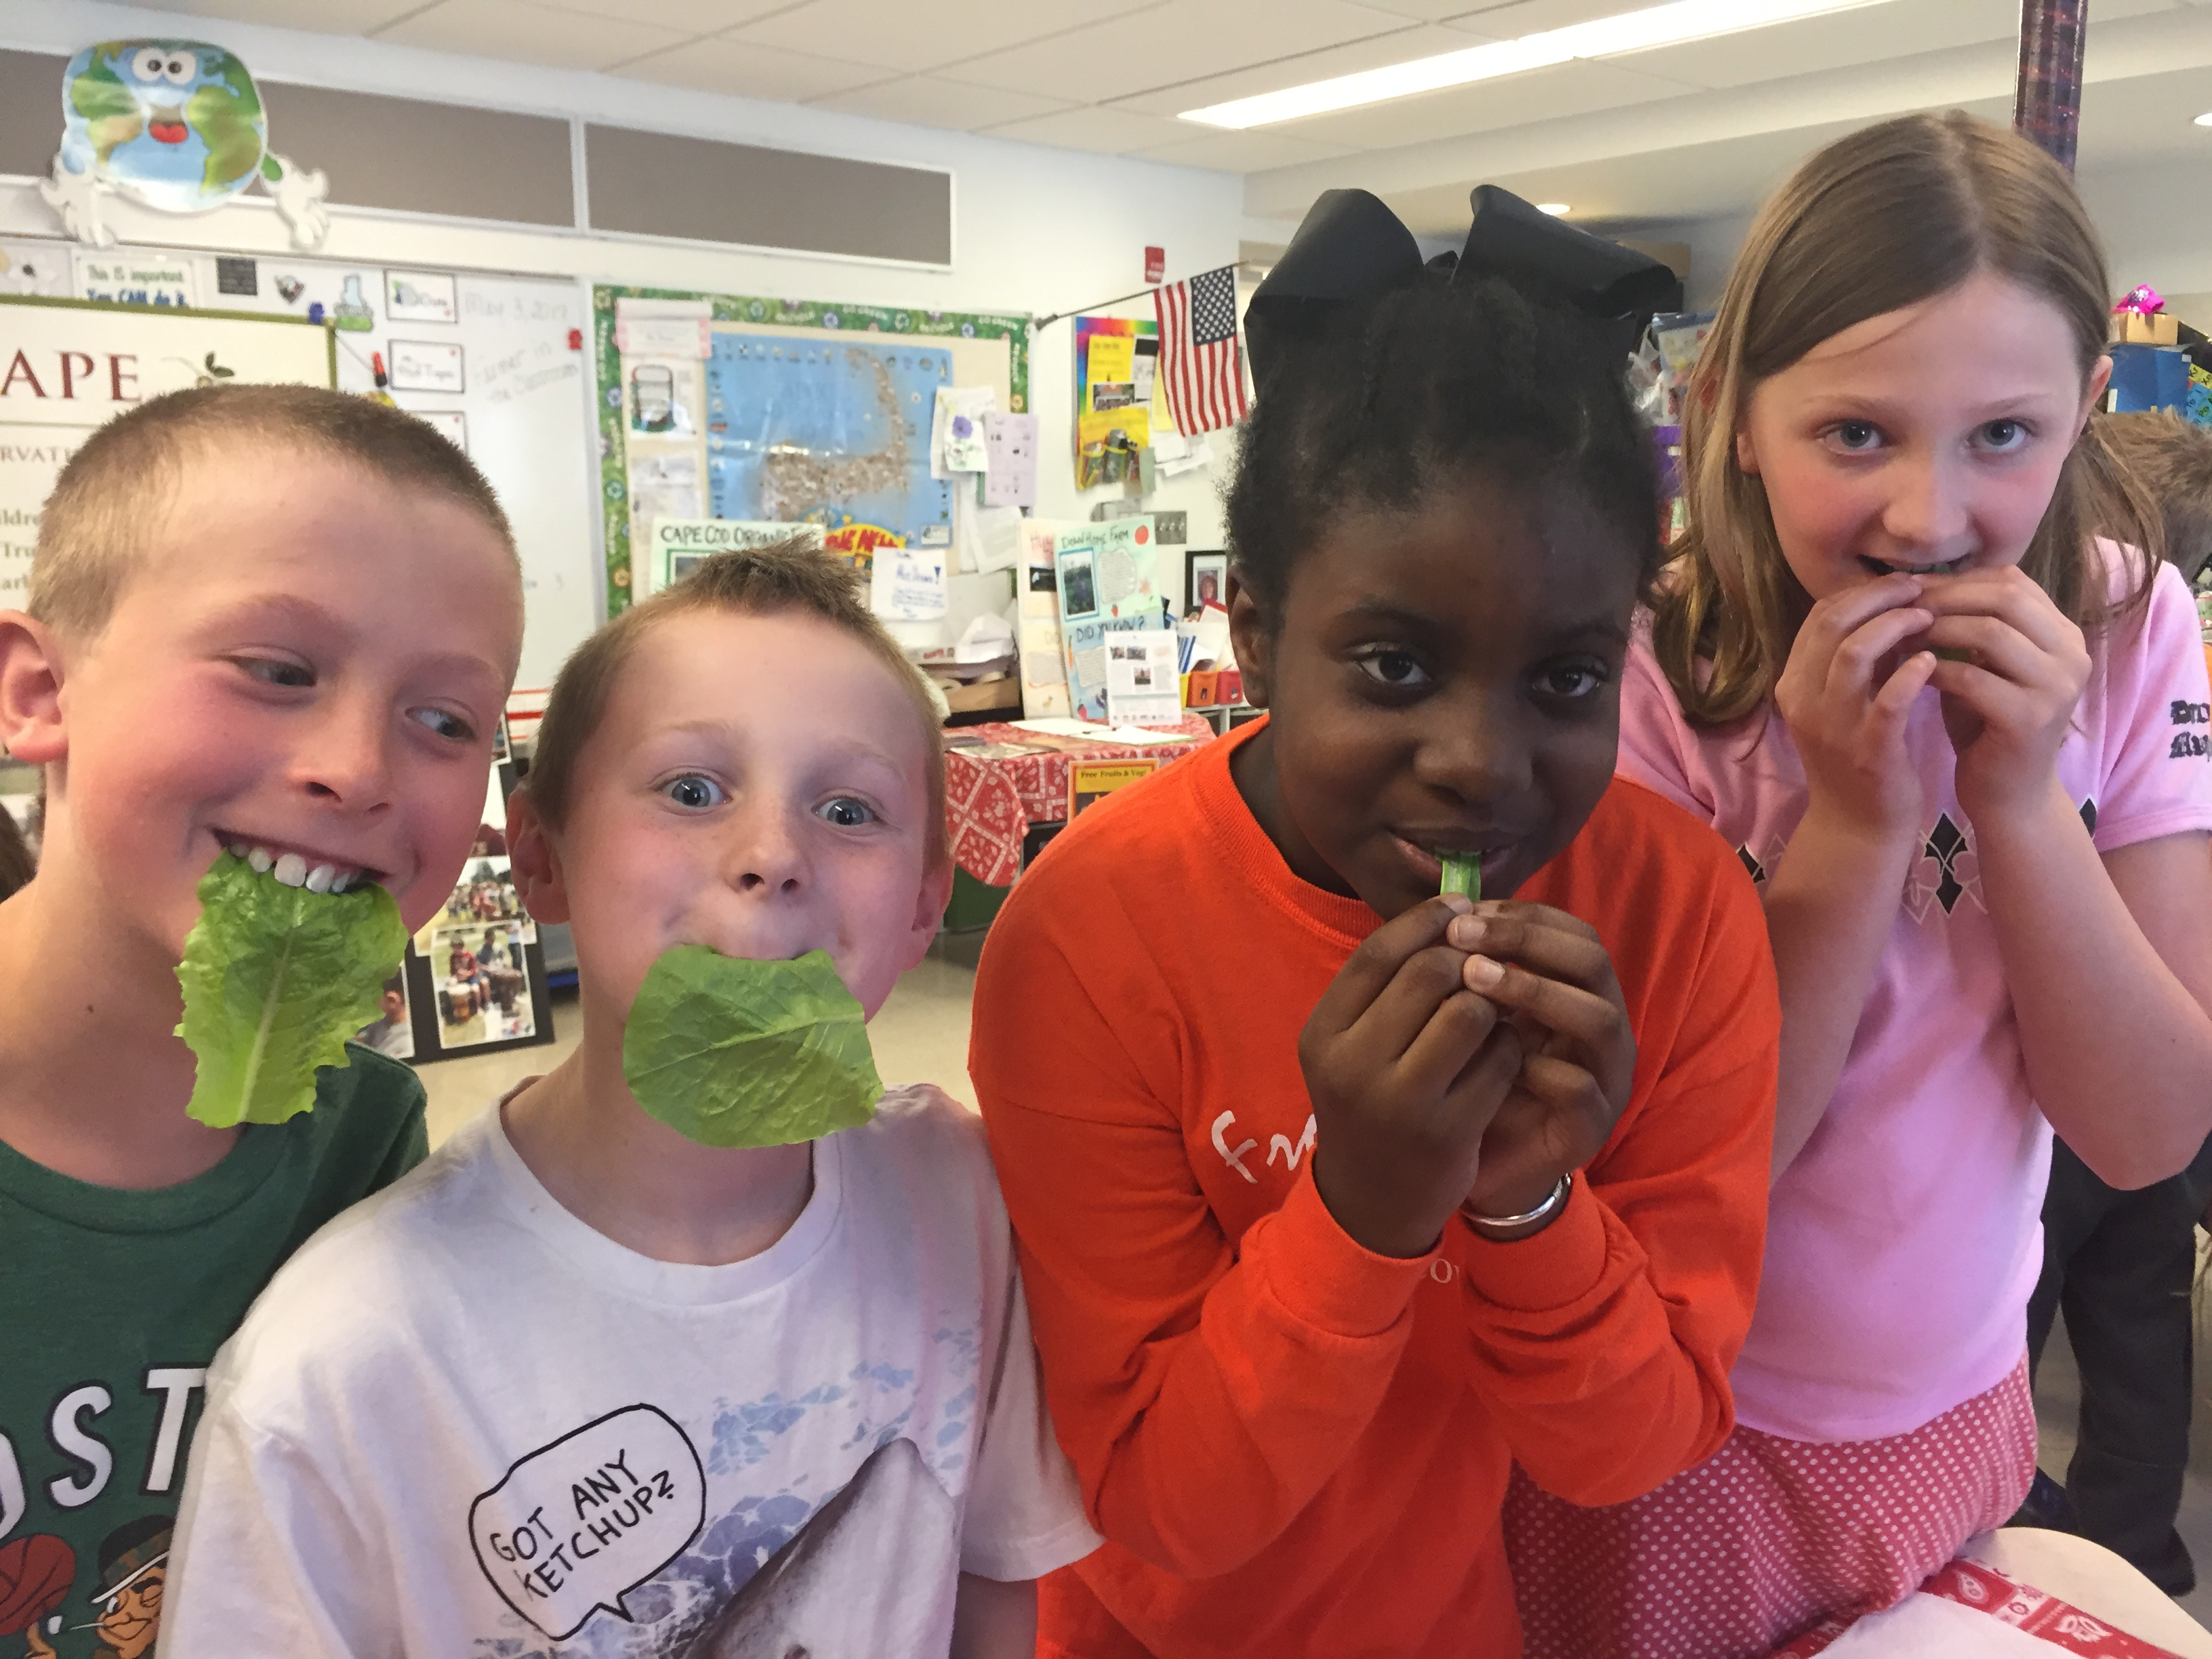 Kids eating lettuce